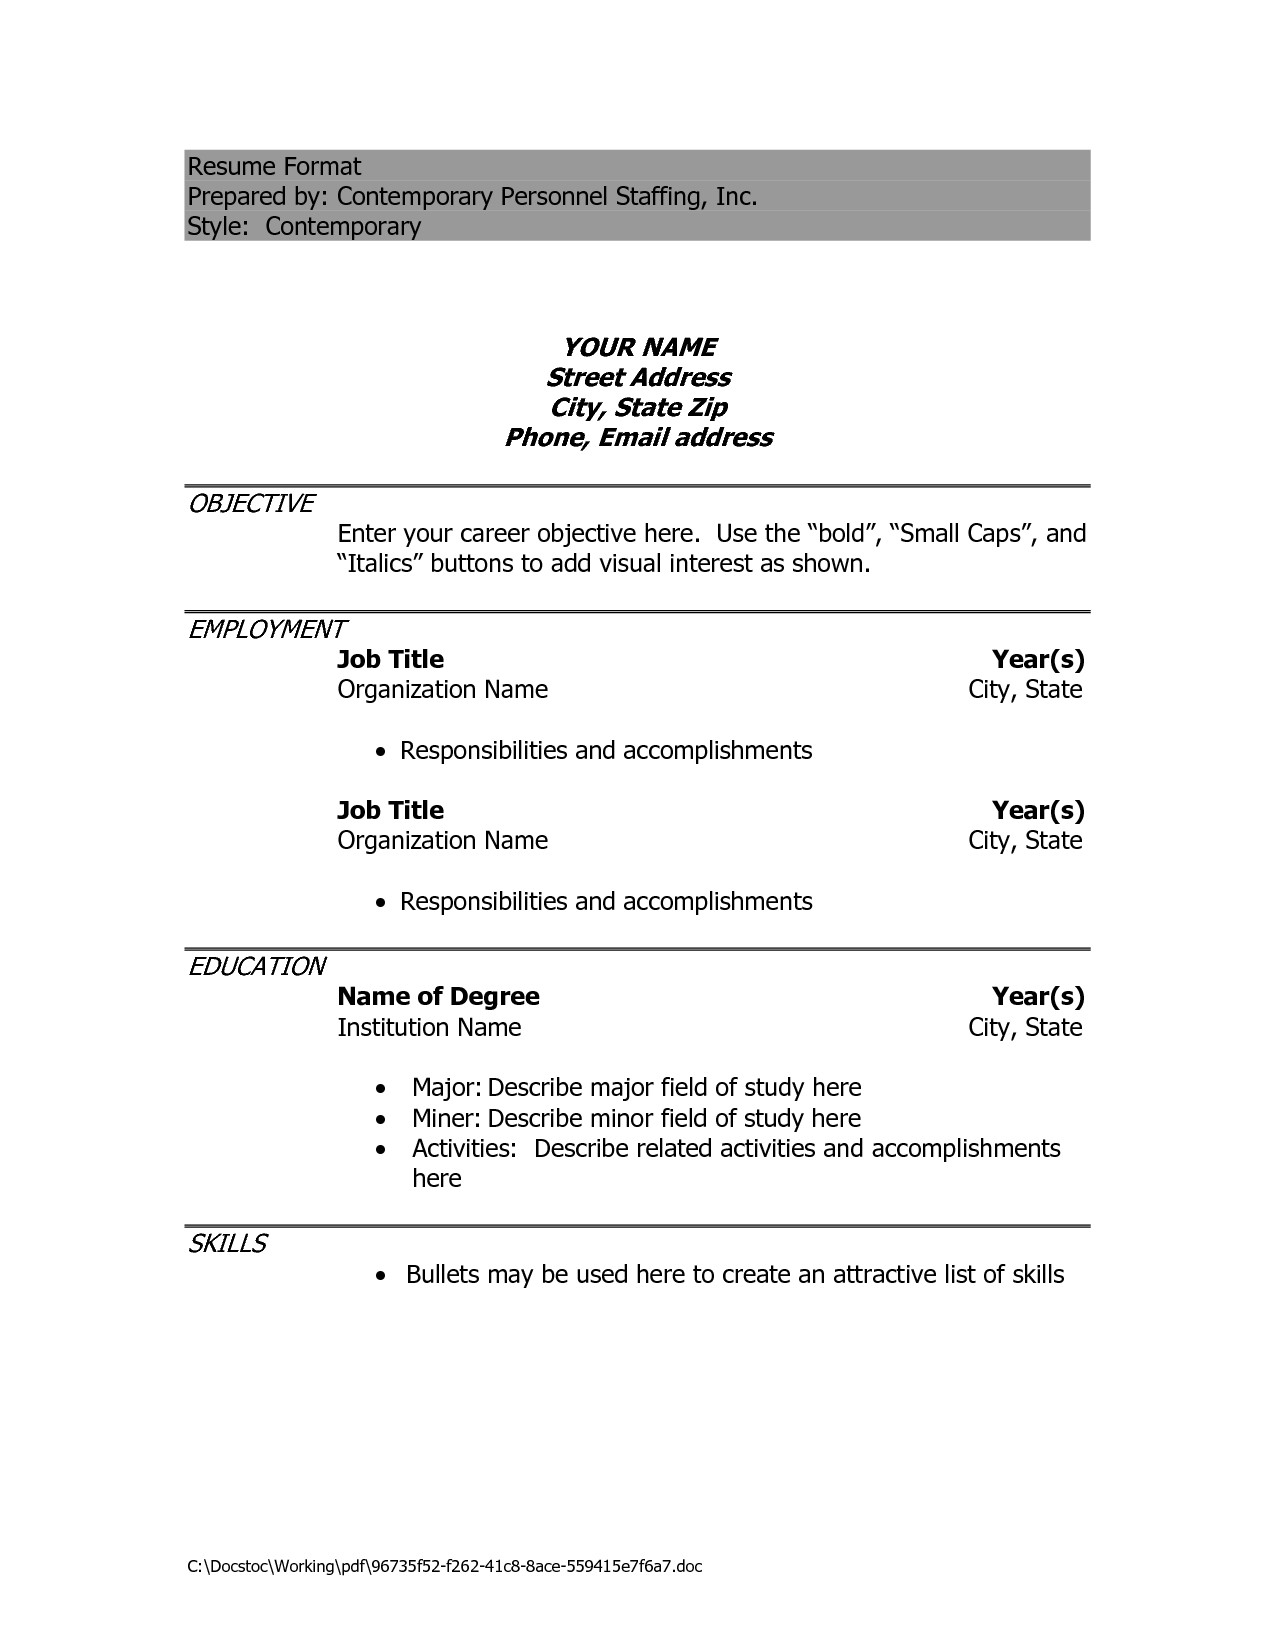 Simple Resume Format Doc Free Excel Templates